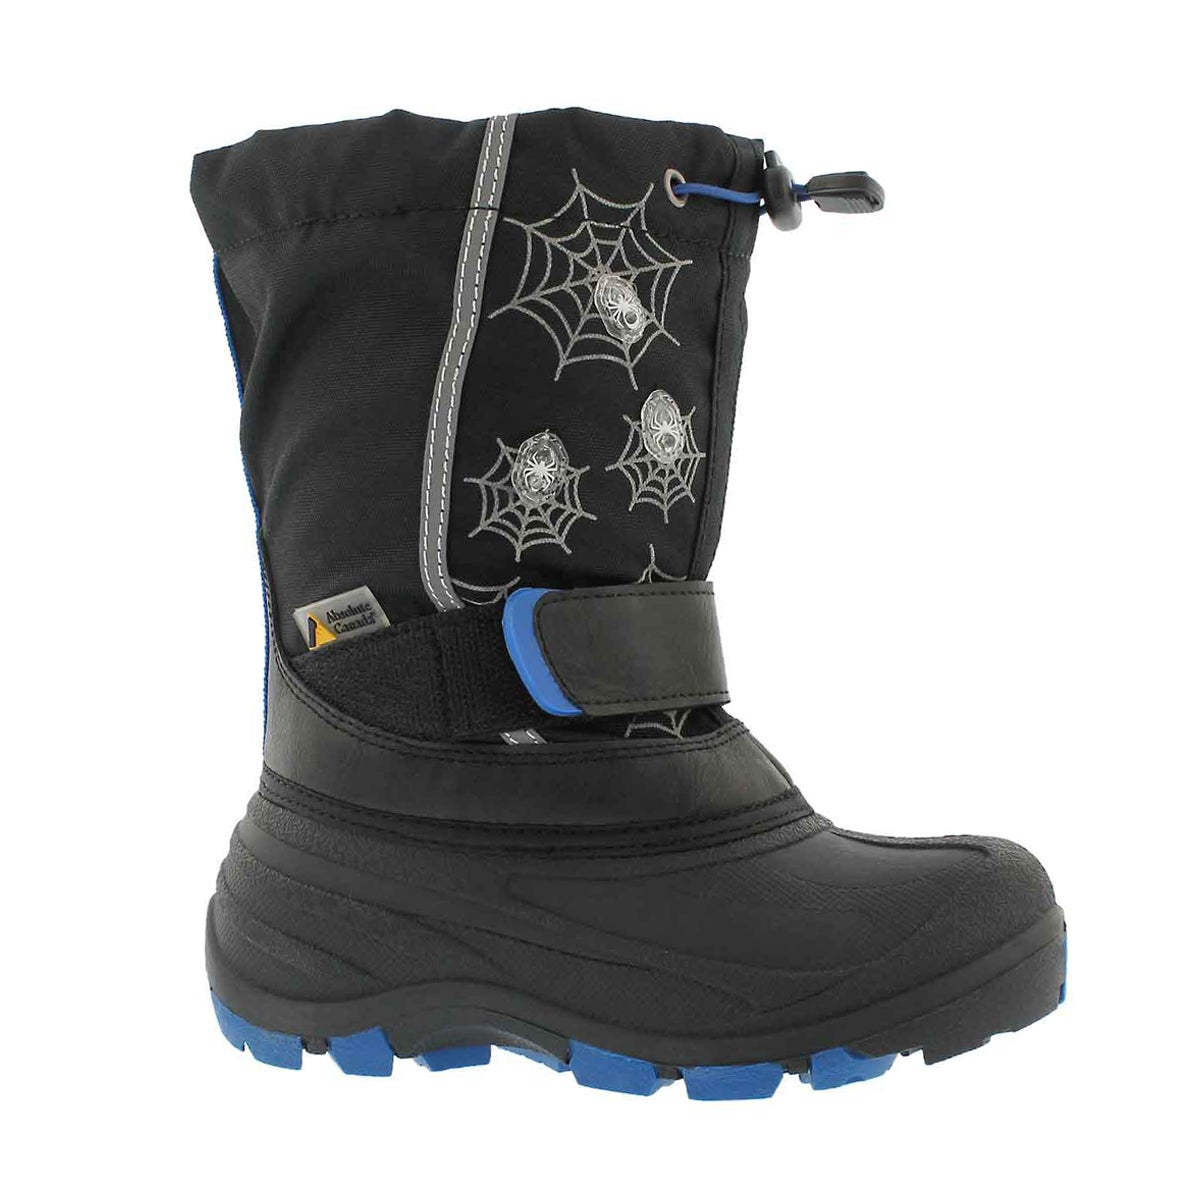 Boys' FROSTWEB blue wp light up winter boots